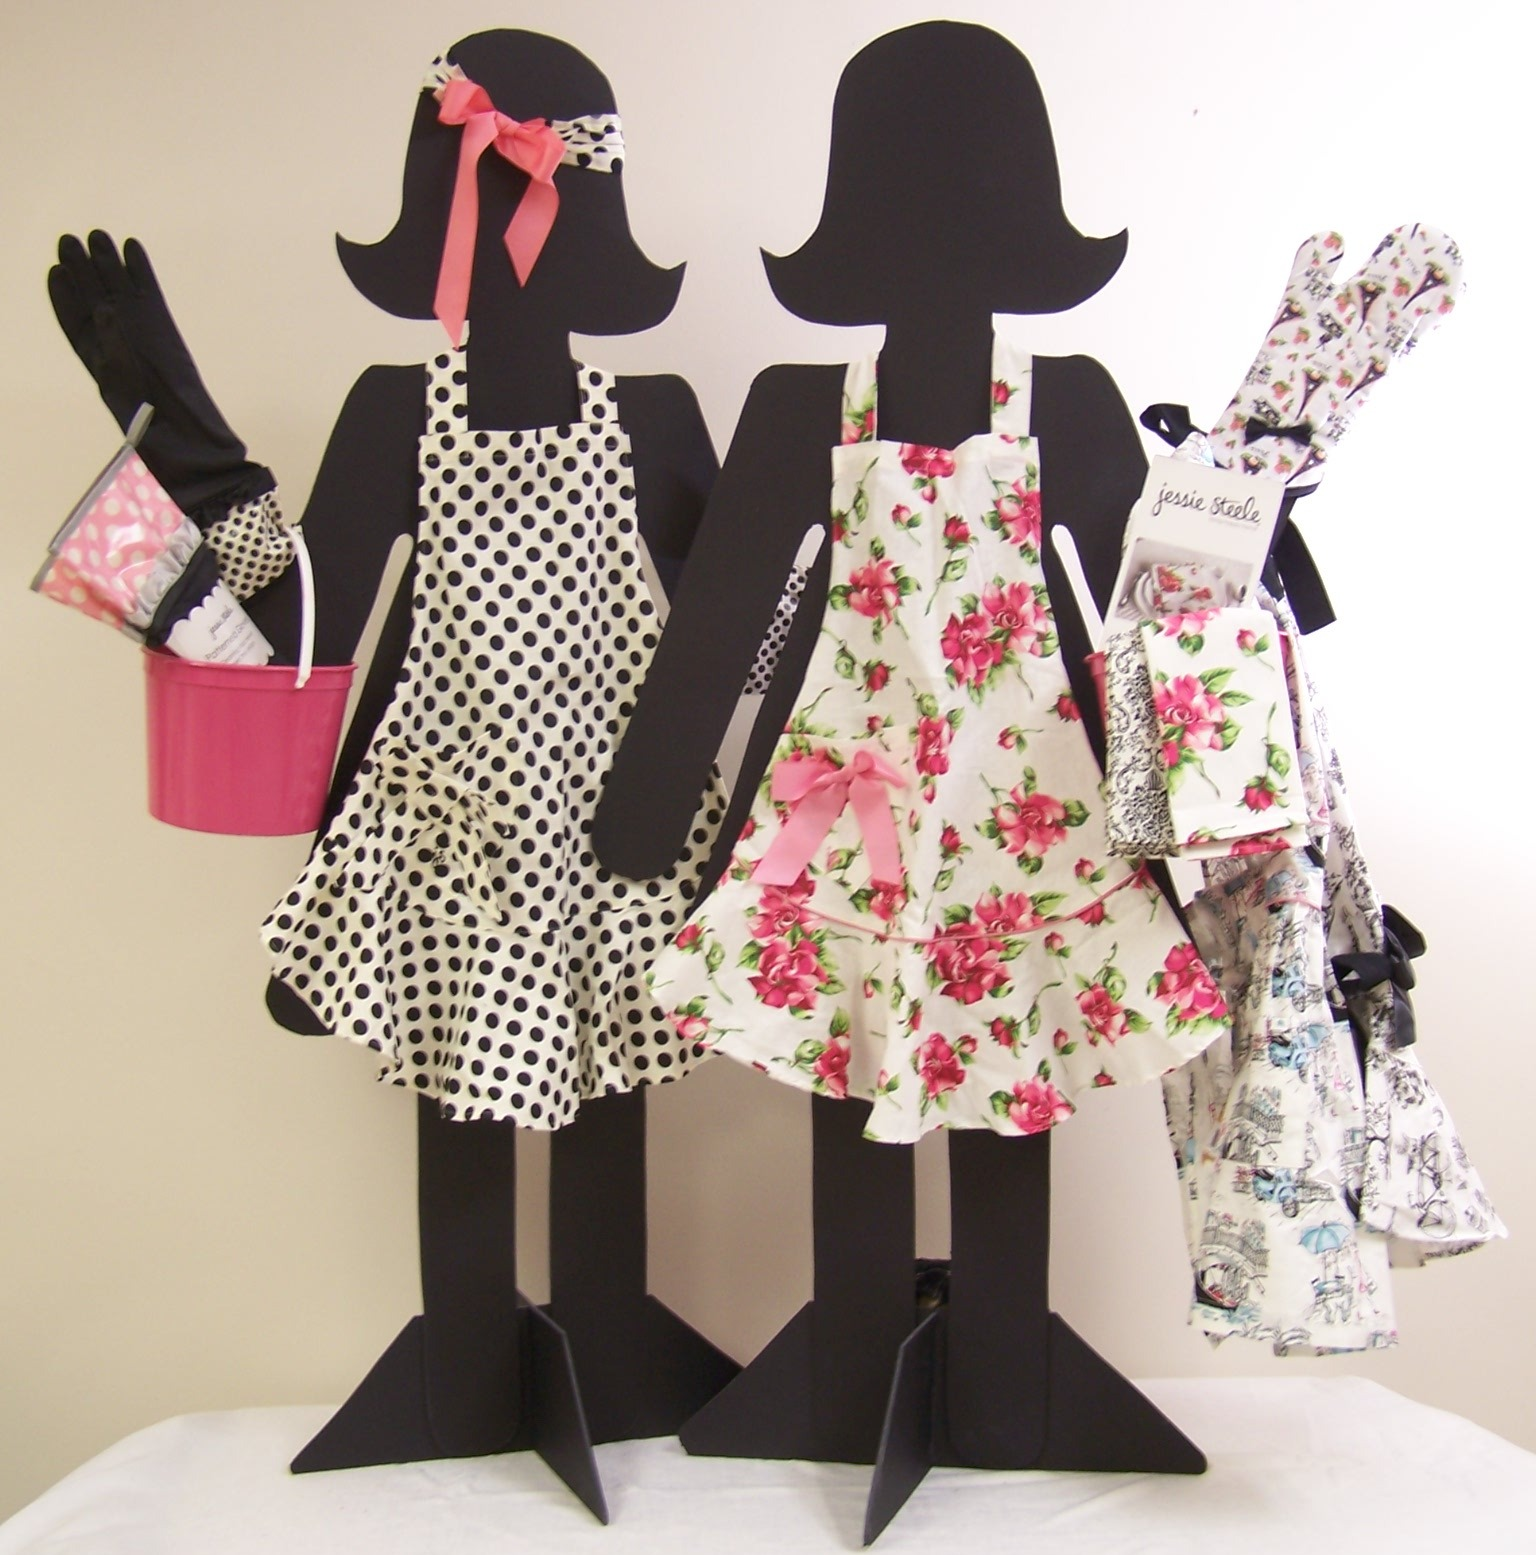 Doll-lightful Models: How to Create Your Own Playful Doll Display